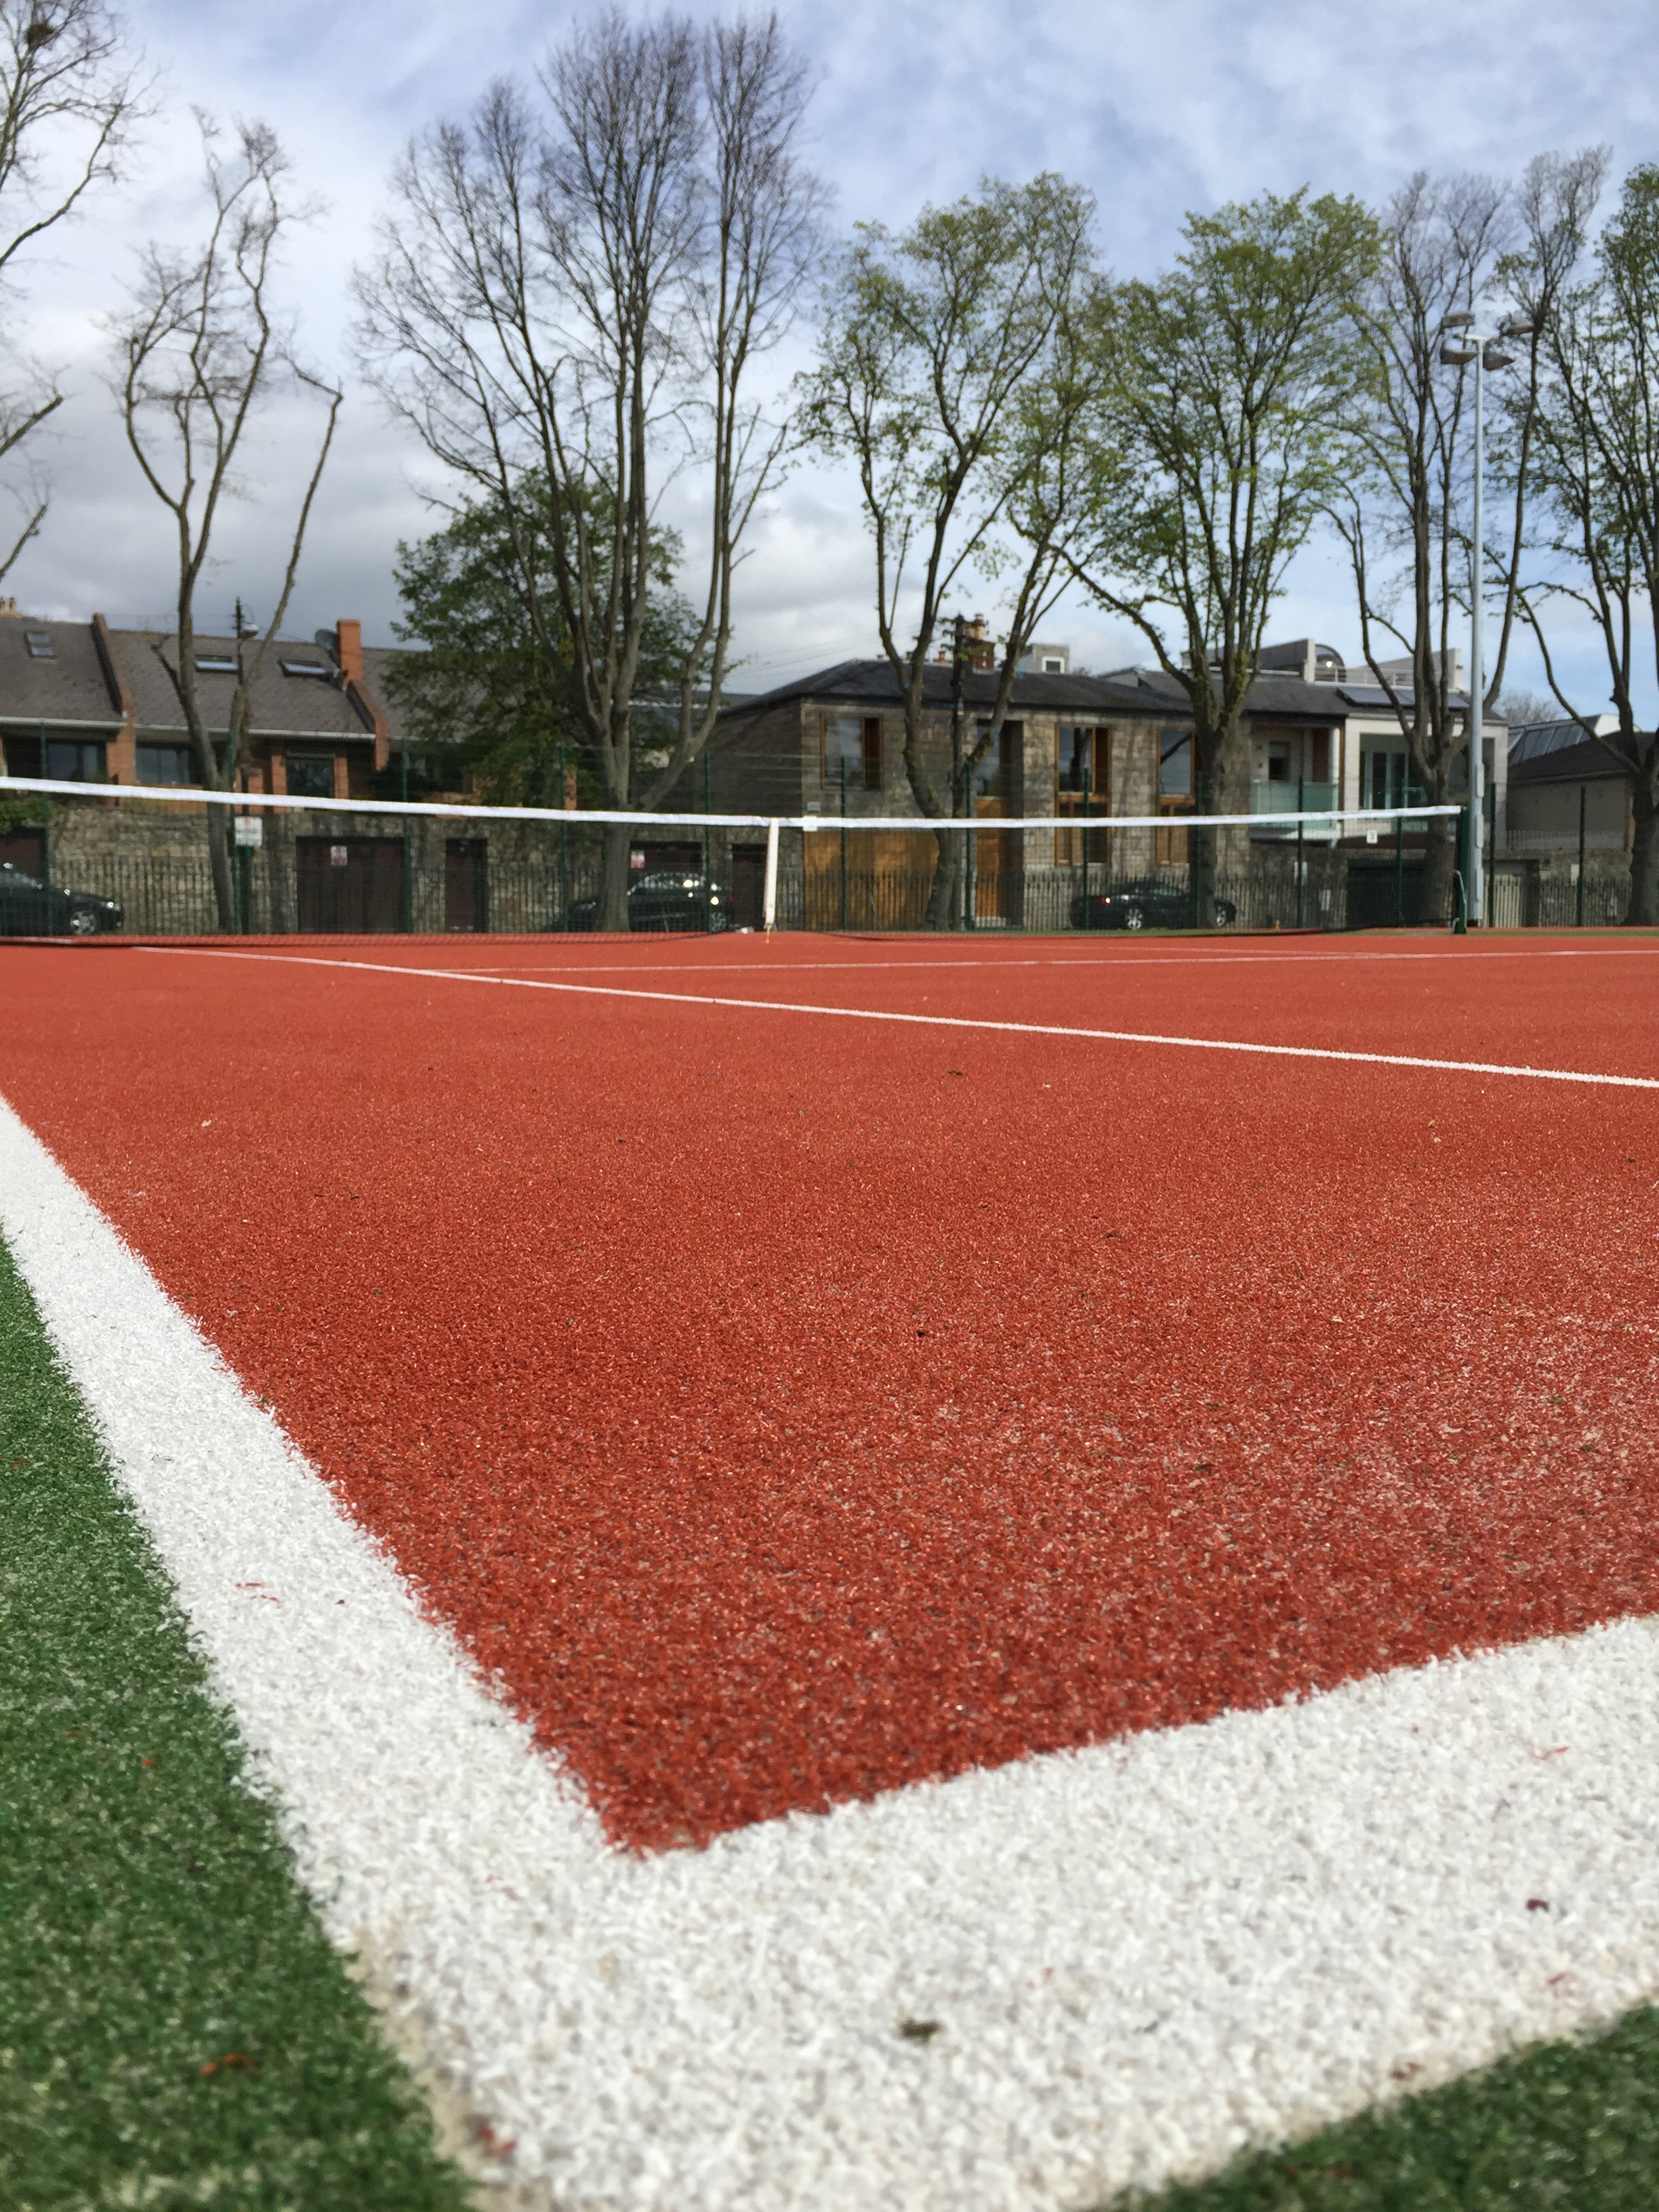 Sand filled turf provides an all weather playing surface for tennis